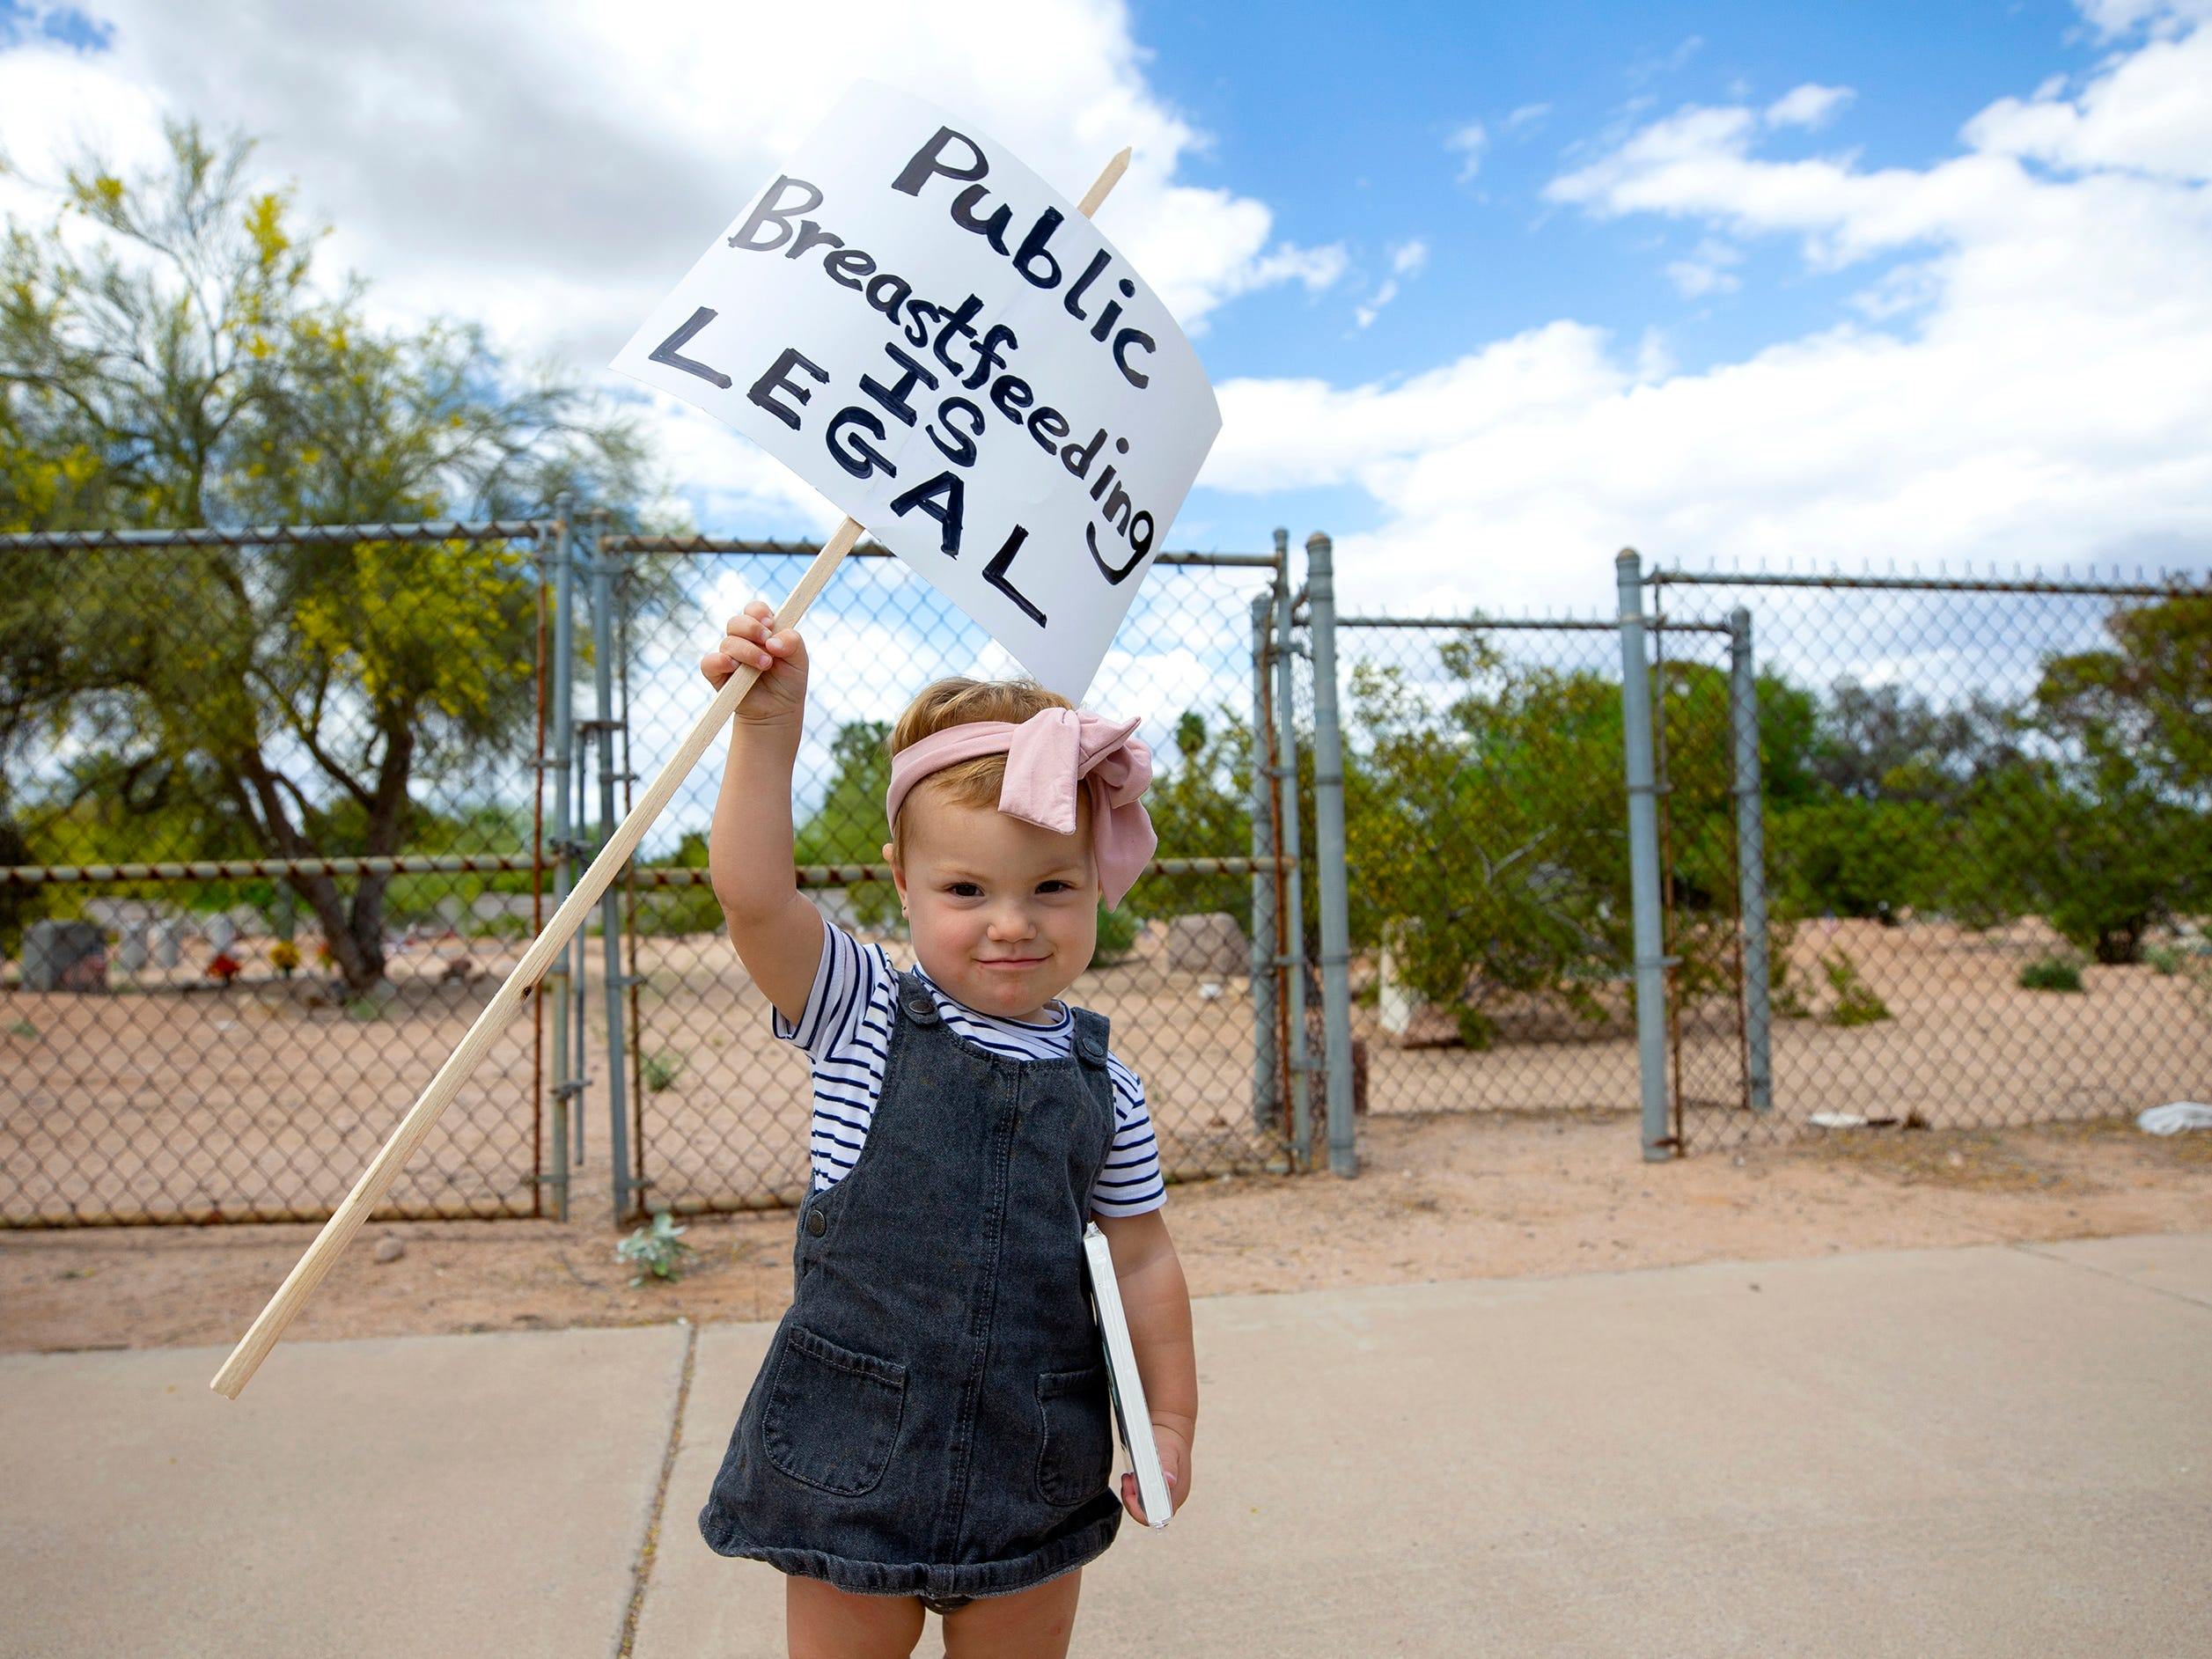 Monet Hoven, a 1 year old, holds a sign during a nurse-in at Kiva Elementary in Paradise Valley.